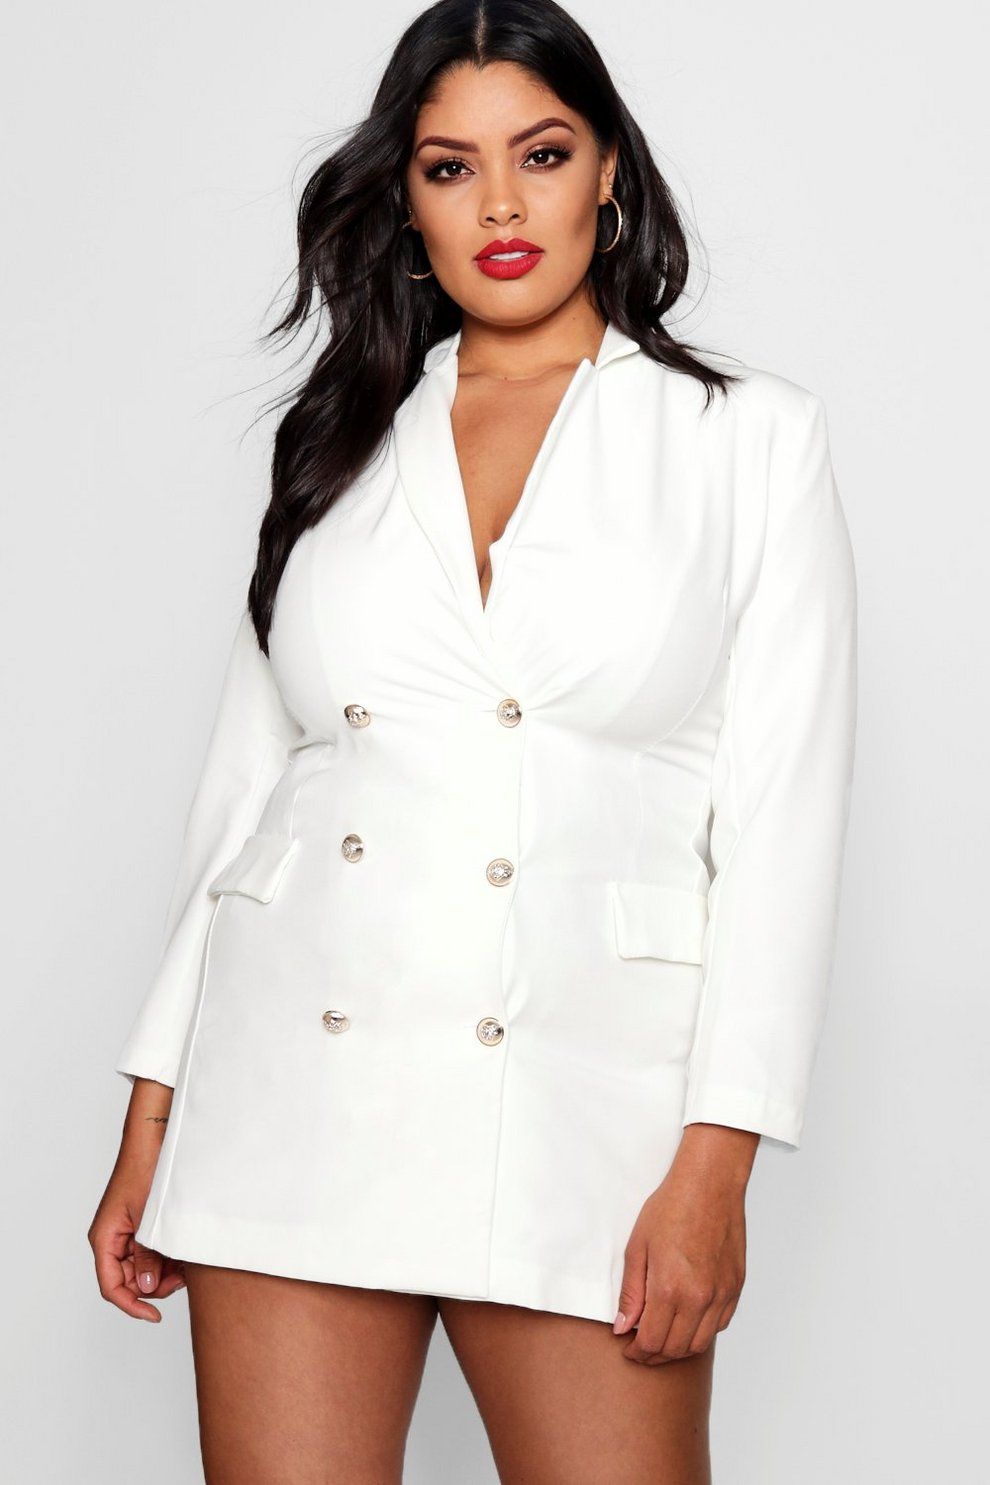 Boohoo Plus Catriona Button Blazer Dress Free Shipping Pay With Visa Eastbay For Sale XMBFRWjI